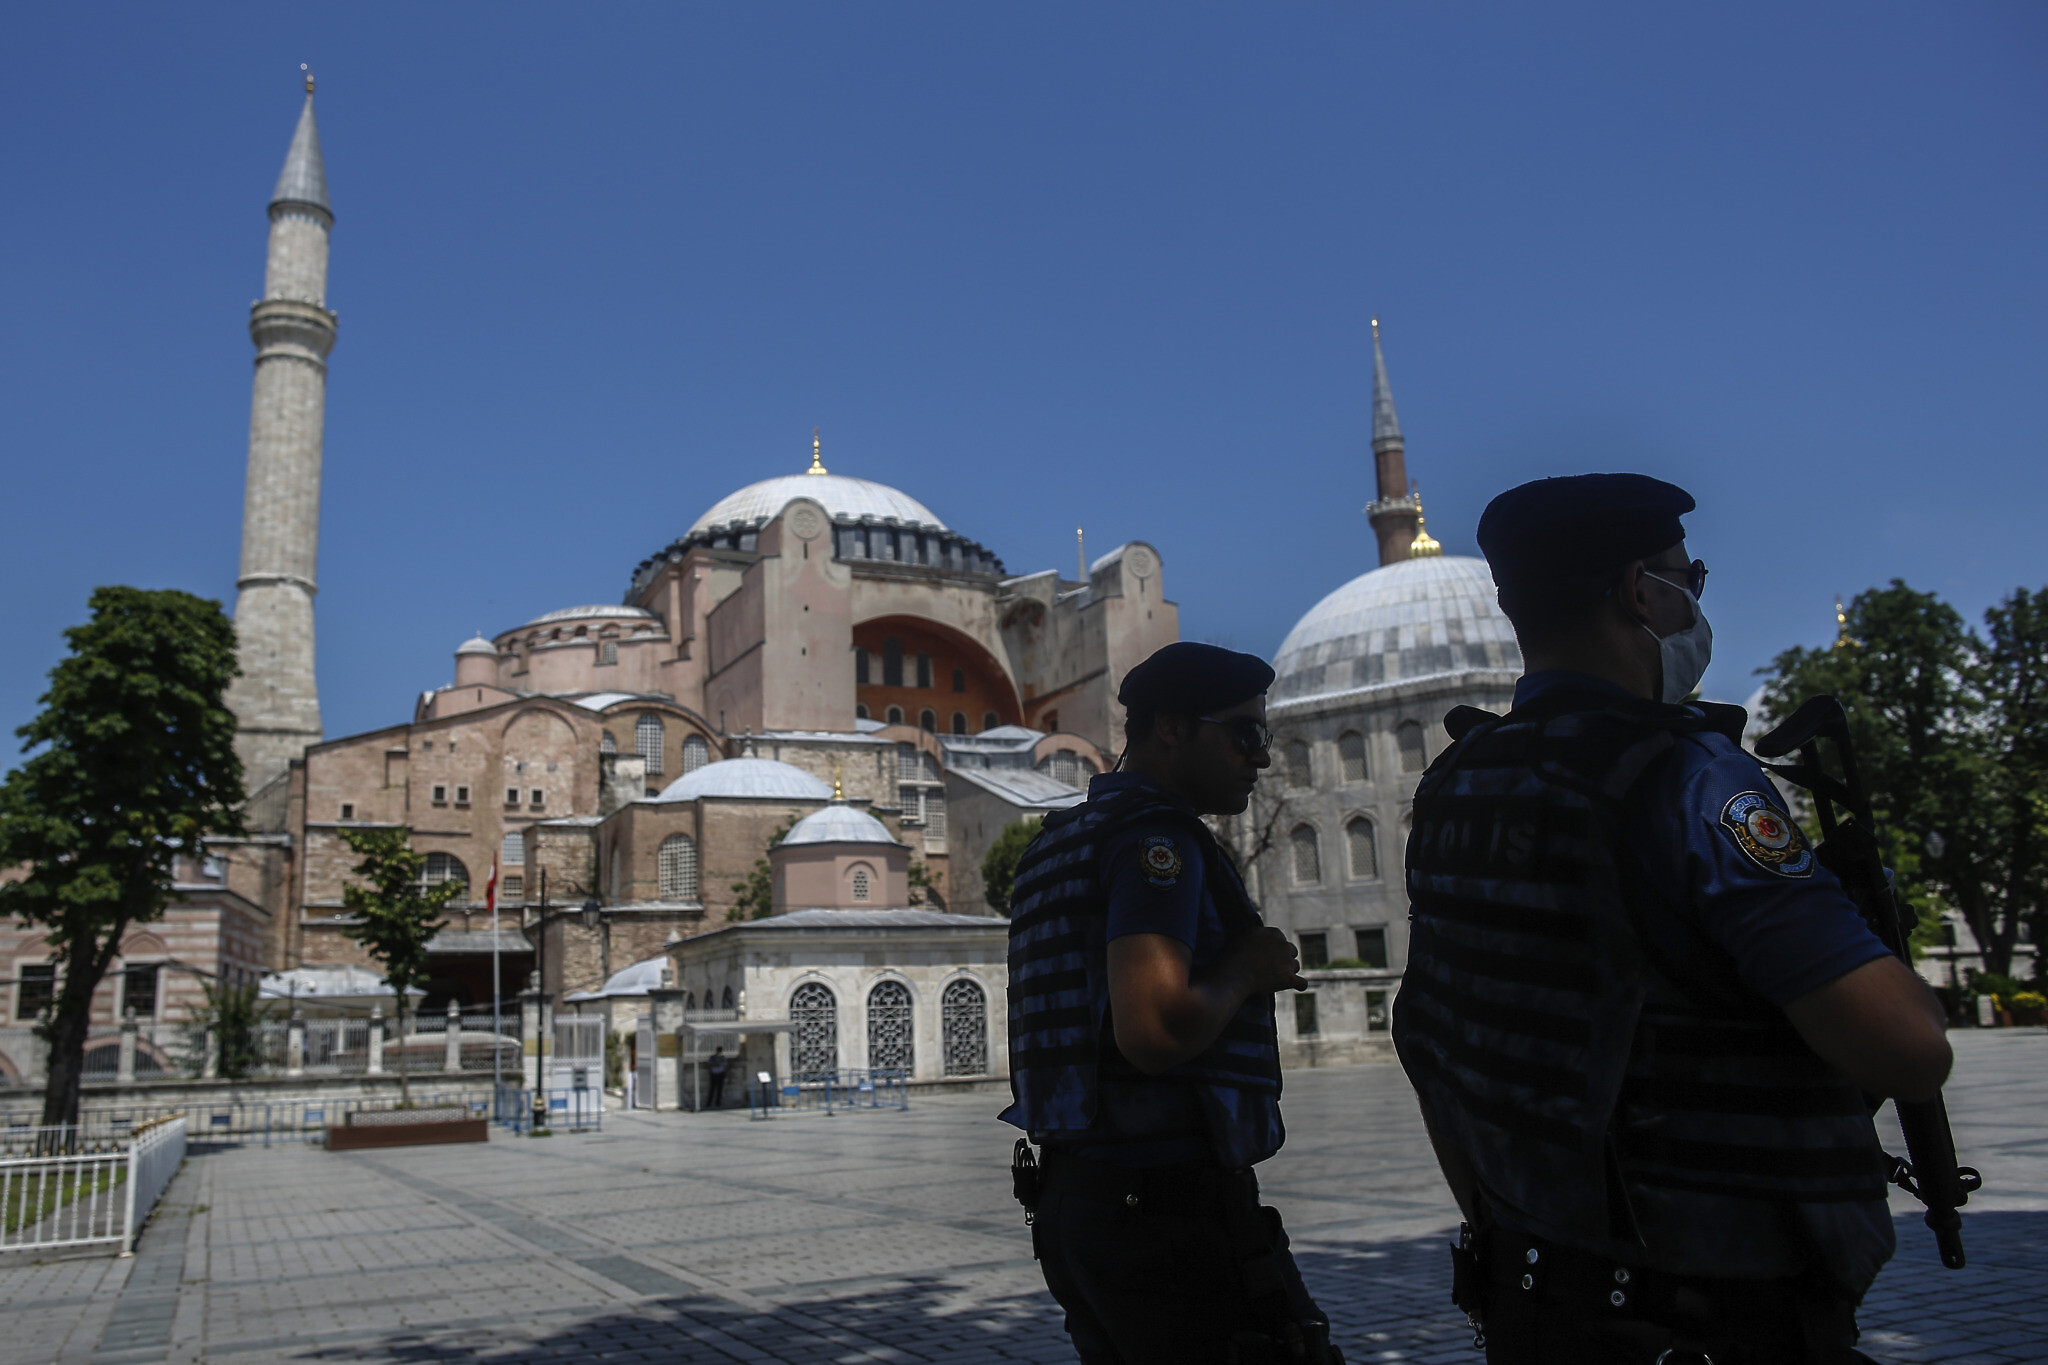 Hagia Sophia can be reconverted to mosque, Turkish court rules